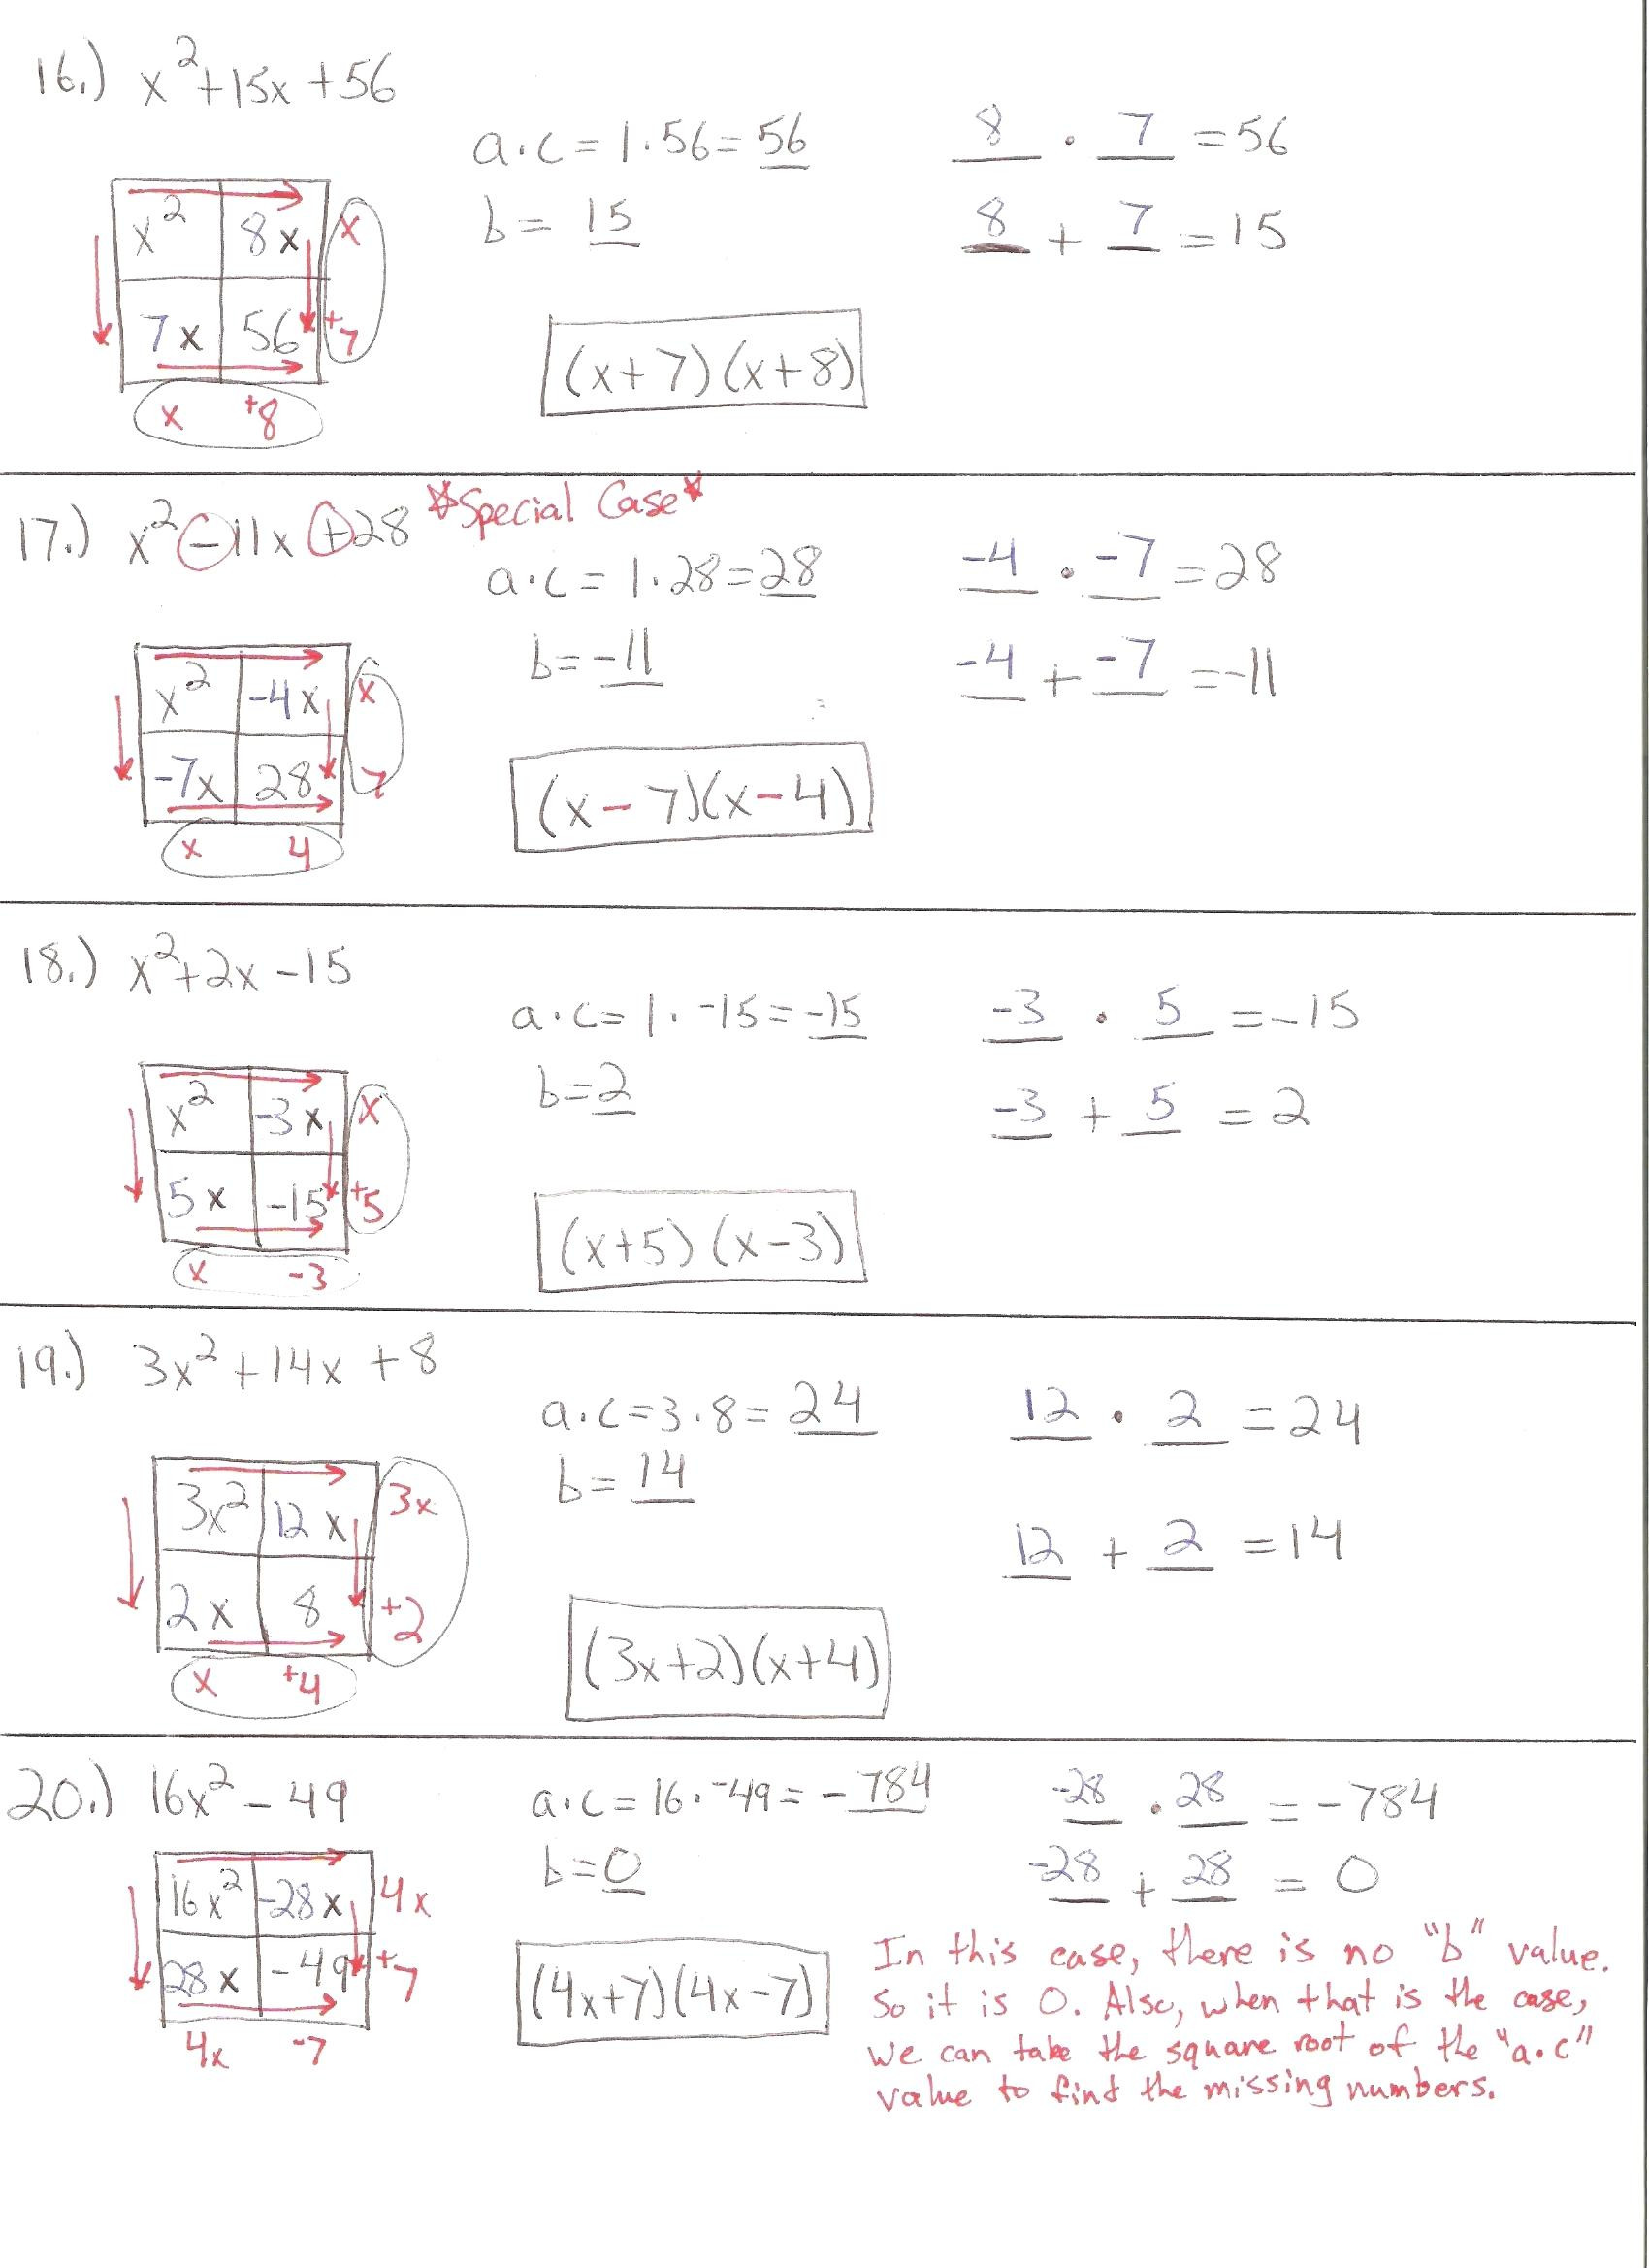 Quadratic Equation Worksheet with Answers the Quadratic formula Worksheet Answers Promotiontablecovers